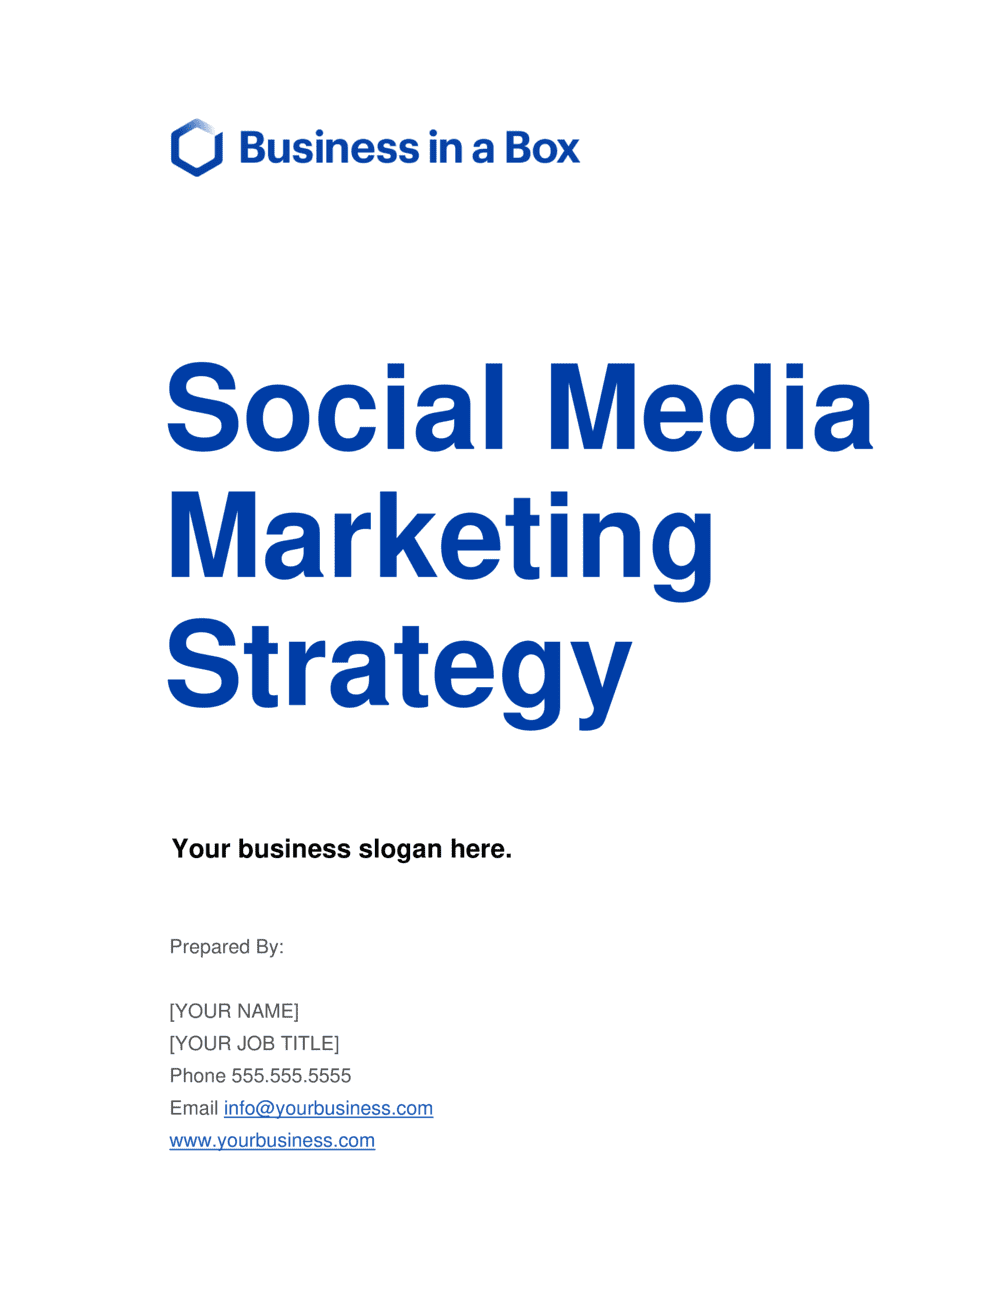 Business-in-a-Box's Social Media Strategy Template